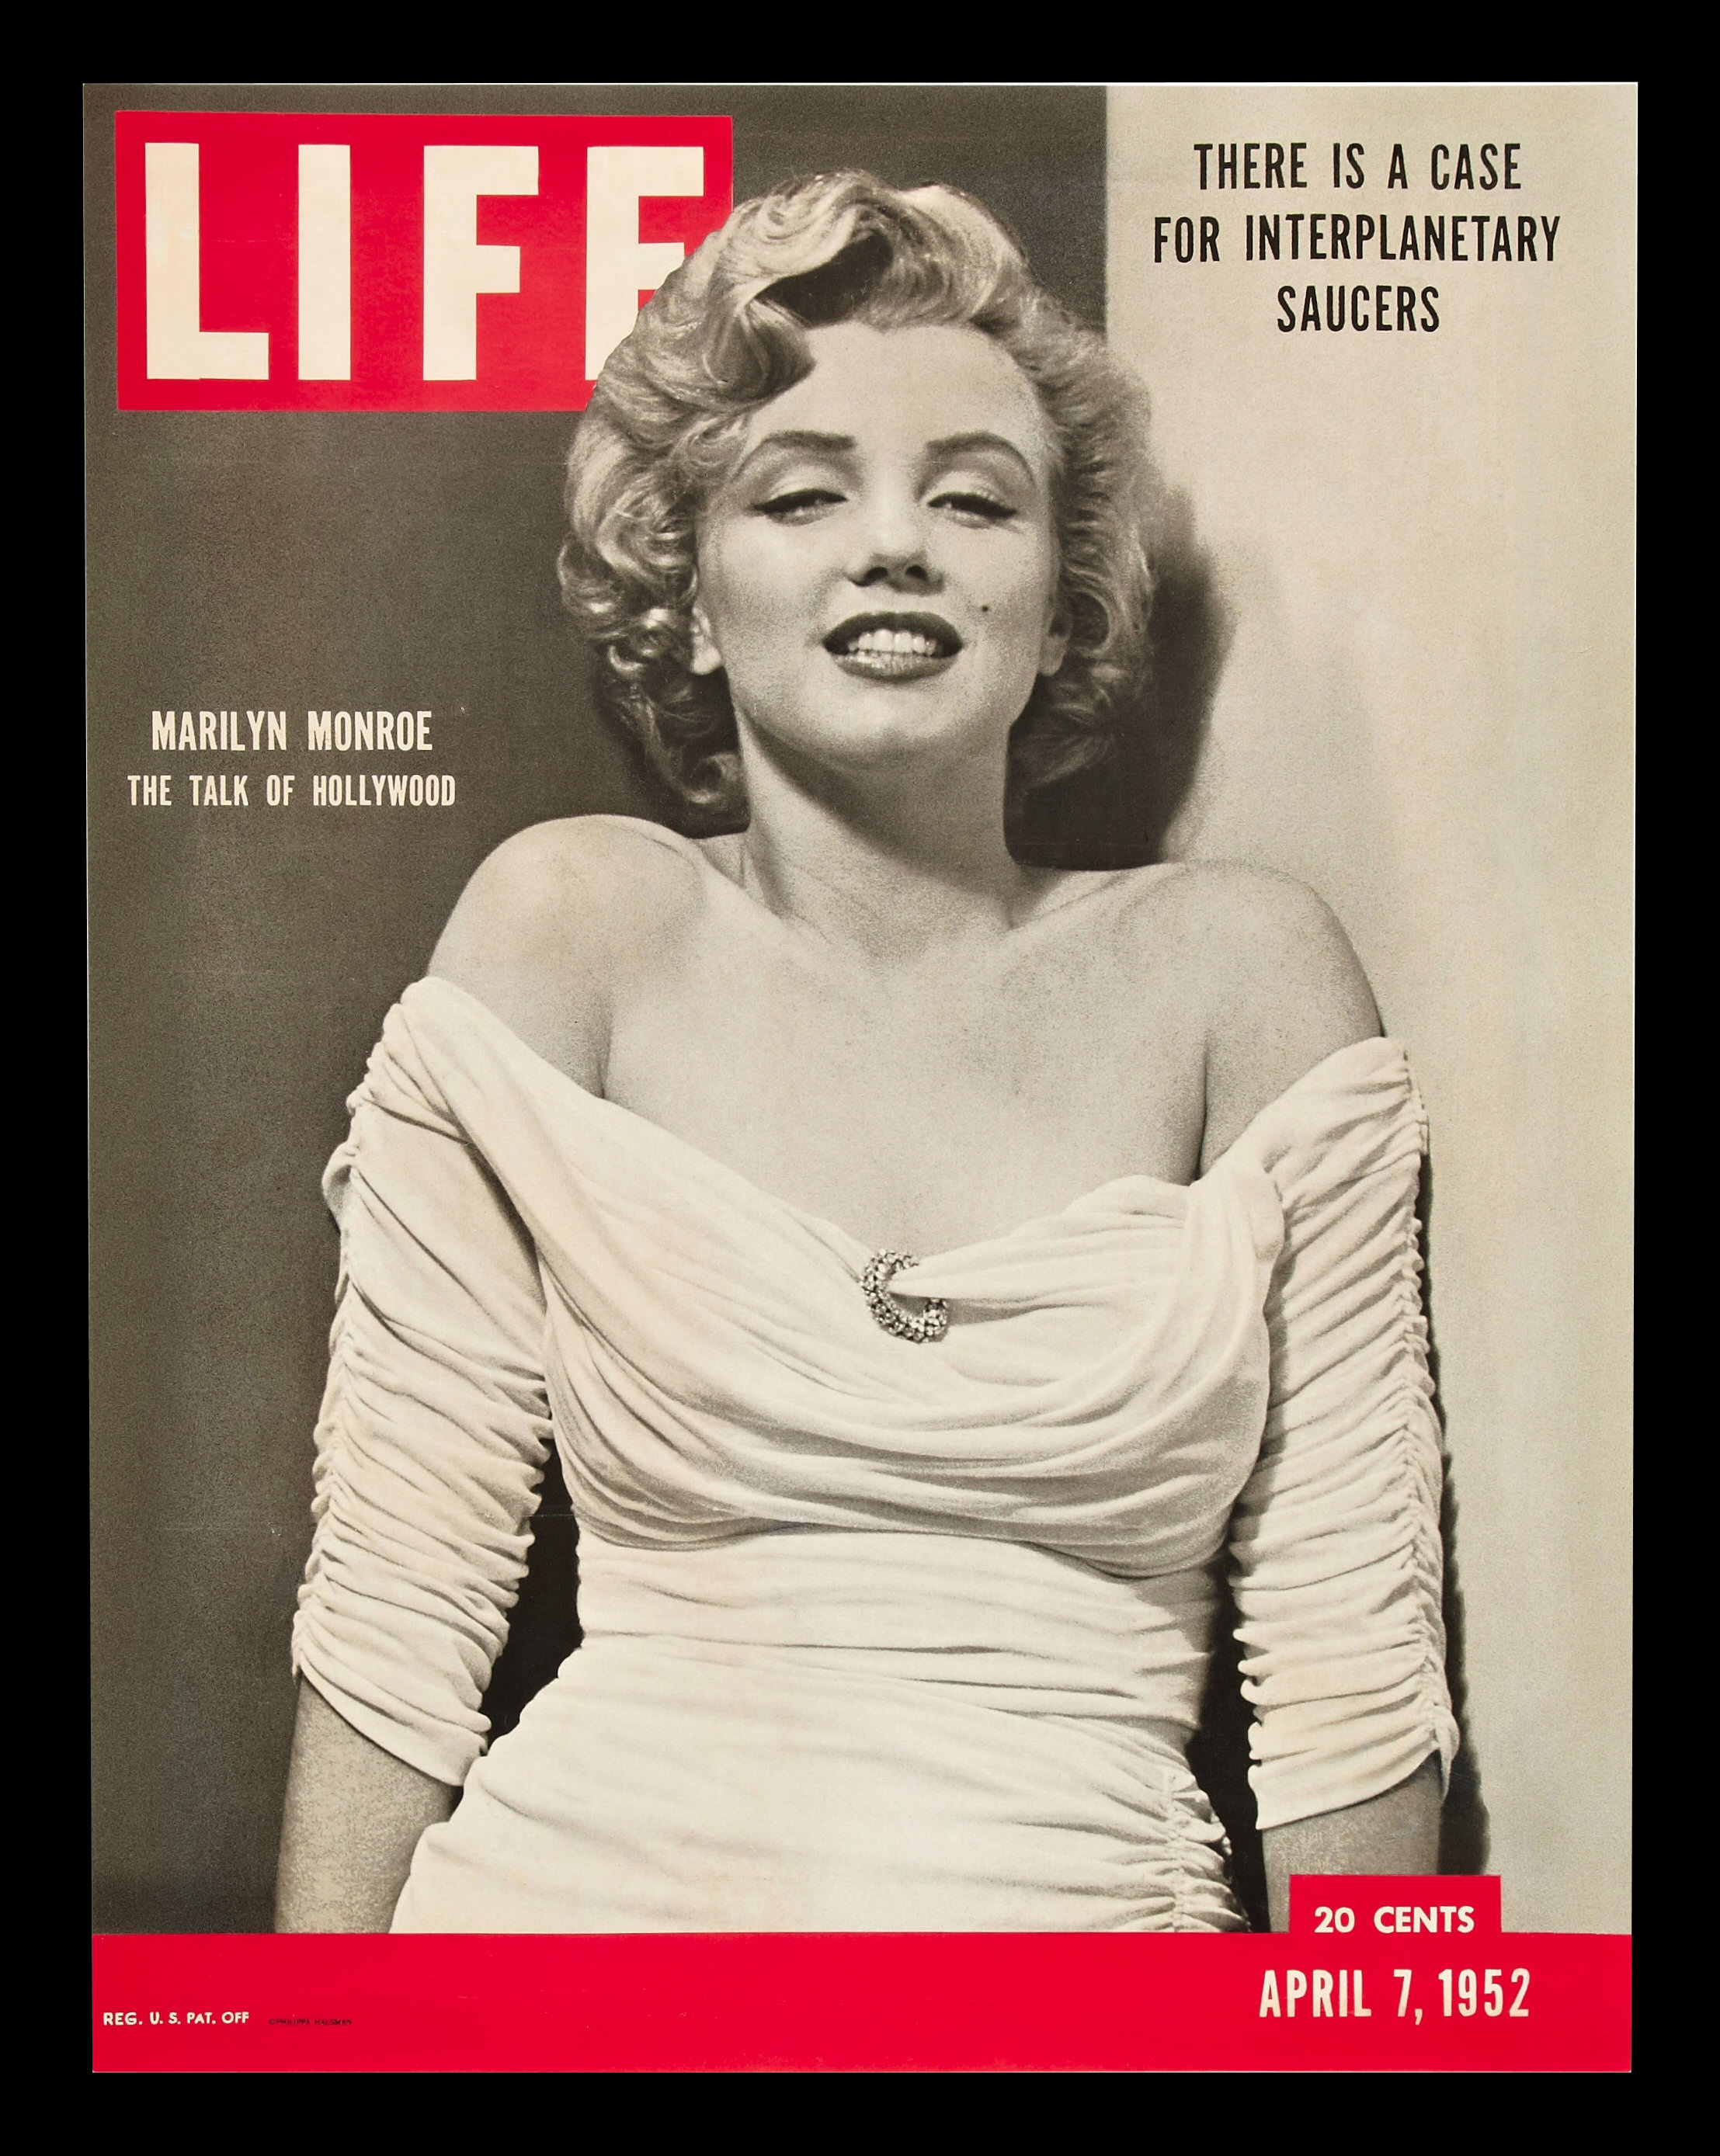 Marilyn Monroe Movie Posters | Original Vintage Film ...